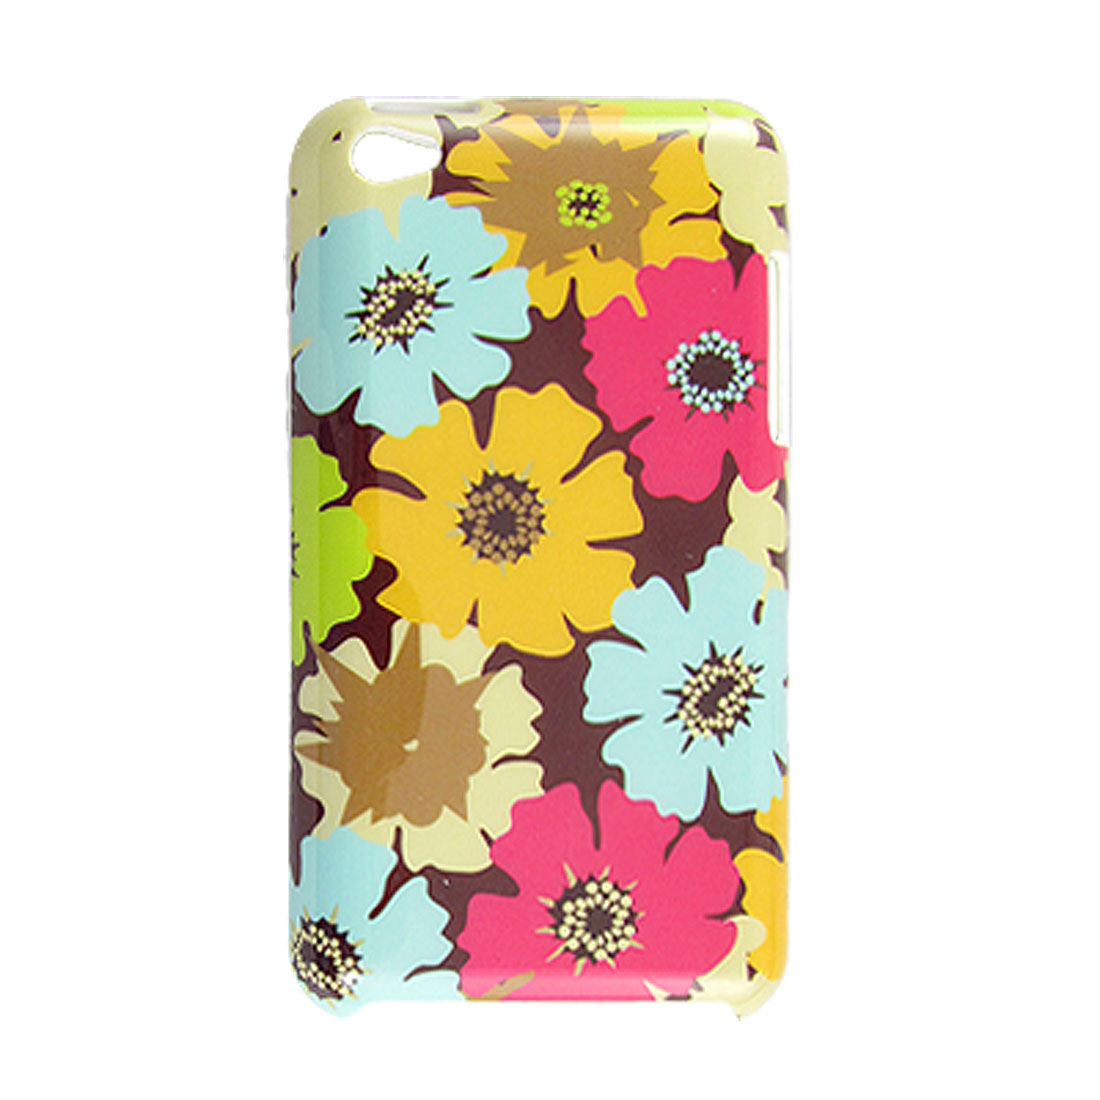 IMD Printed Colorful Flower Pattern Hard Plastic Back Case for iPod Touch 4G